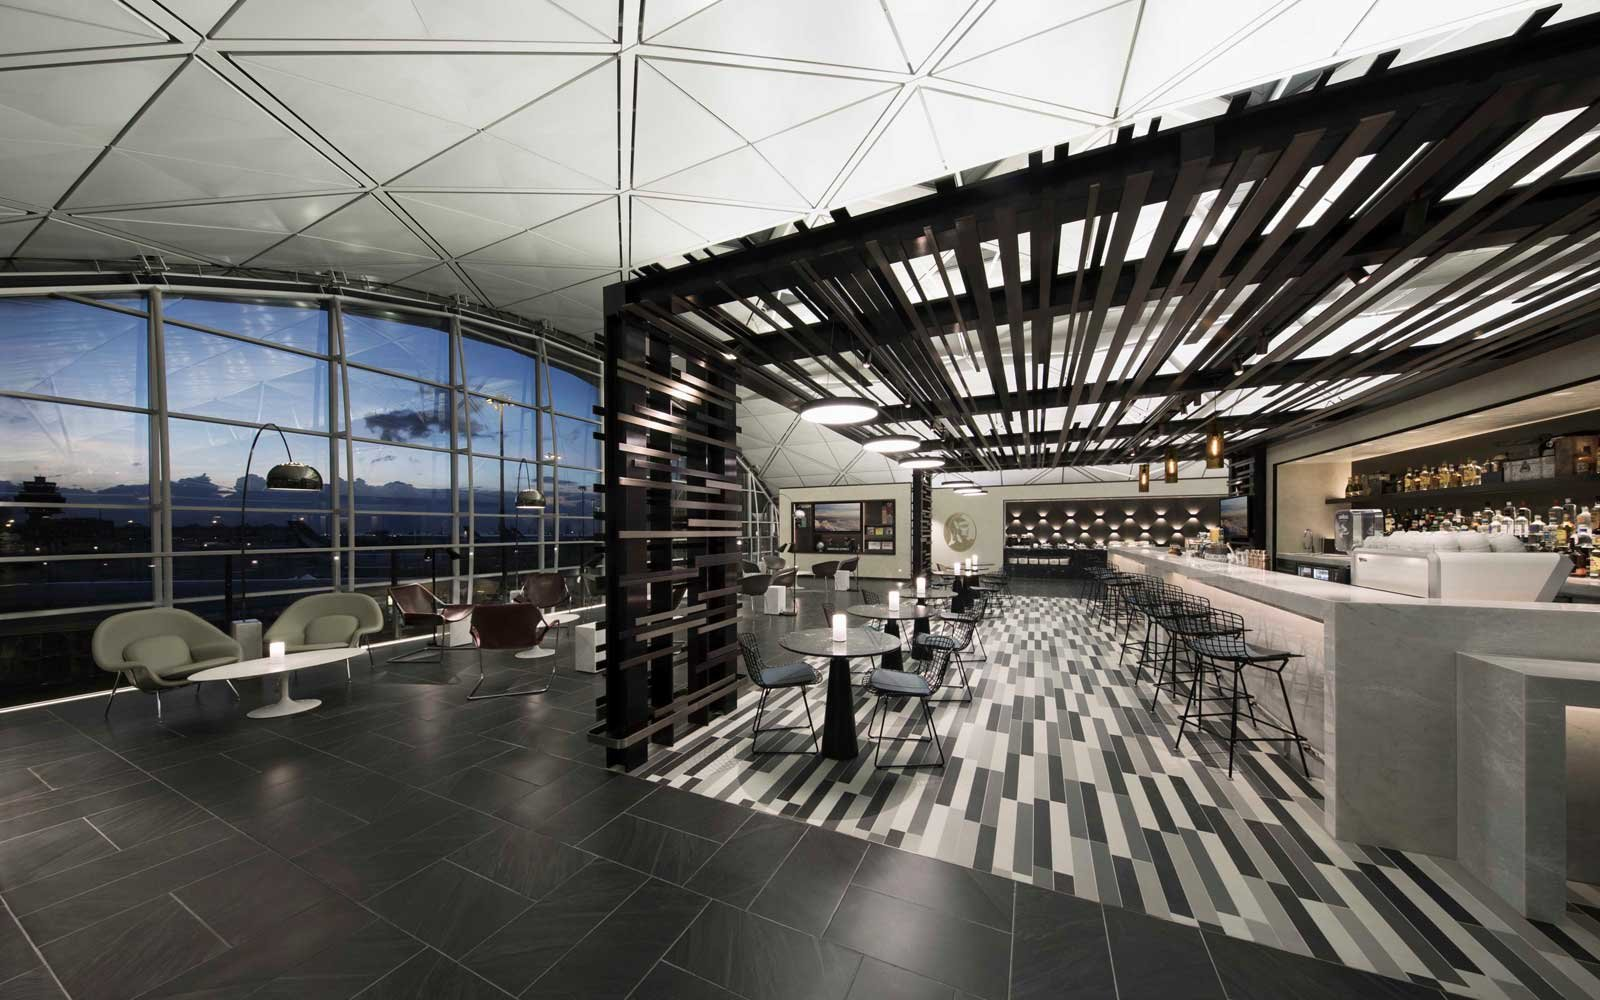 American Express Centurion Lounge The Luxury Airport Lounge We All Want Access To Travel